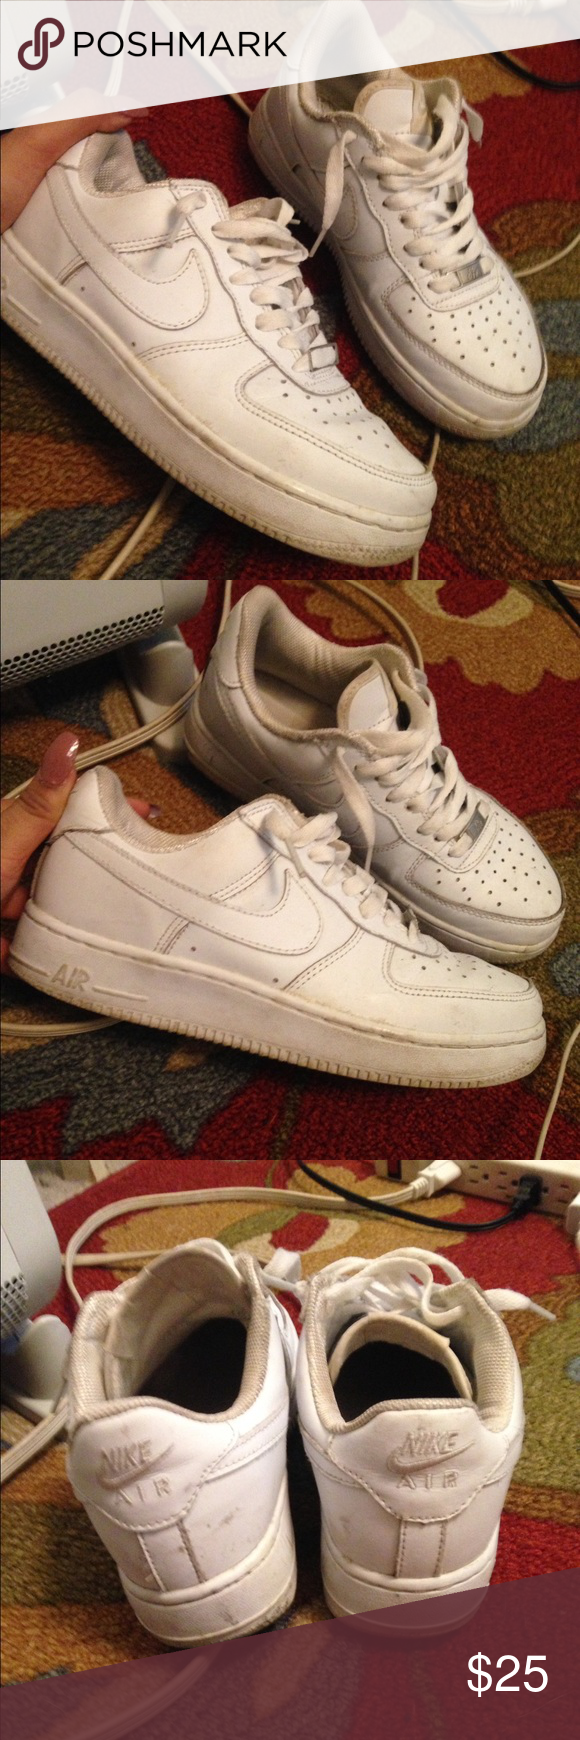 nike air force cleaner